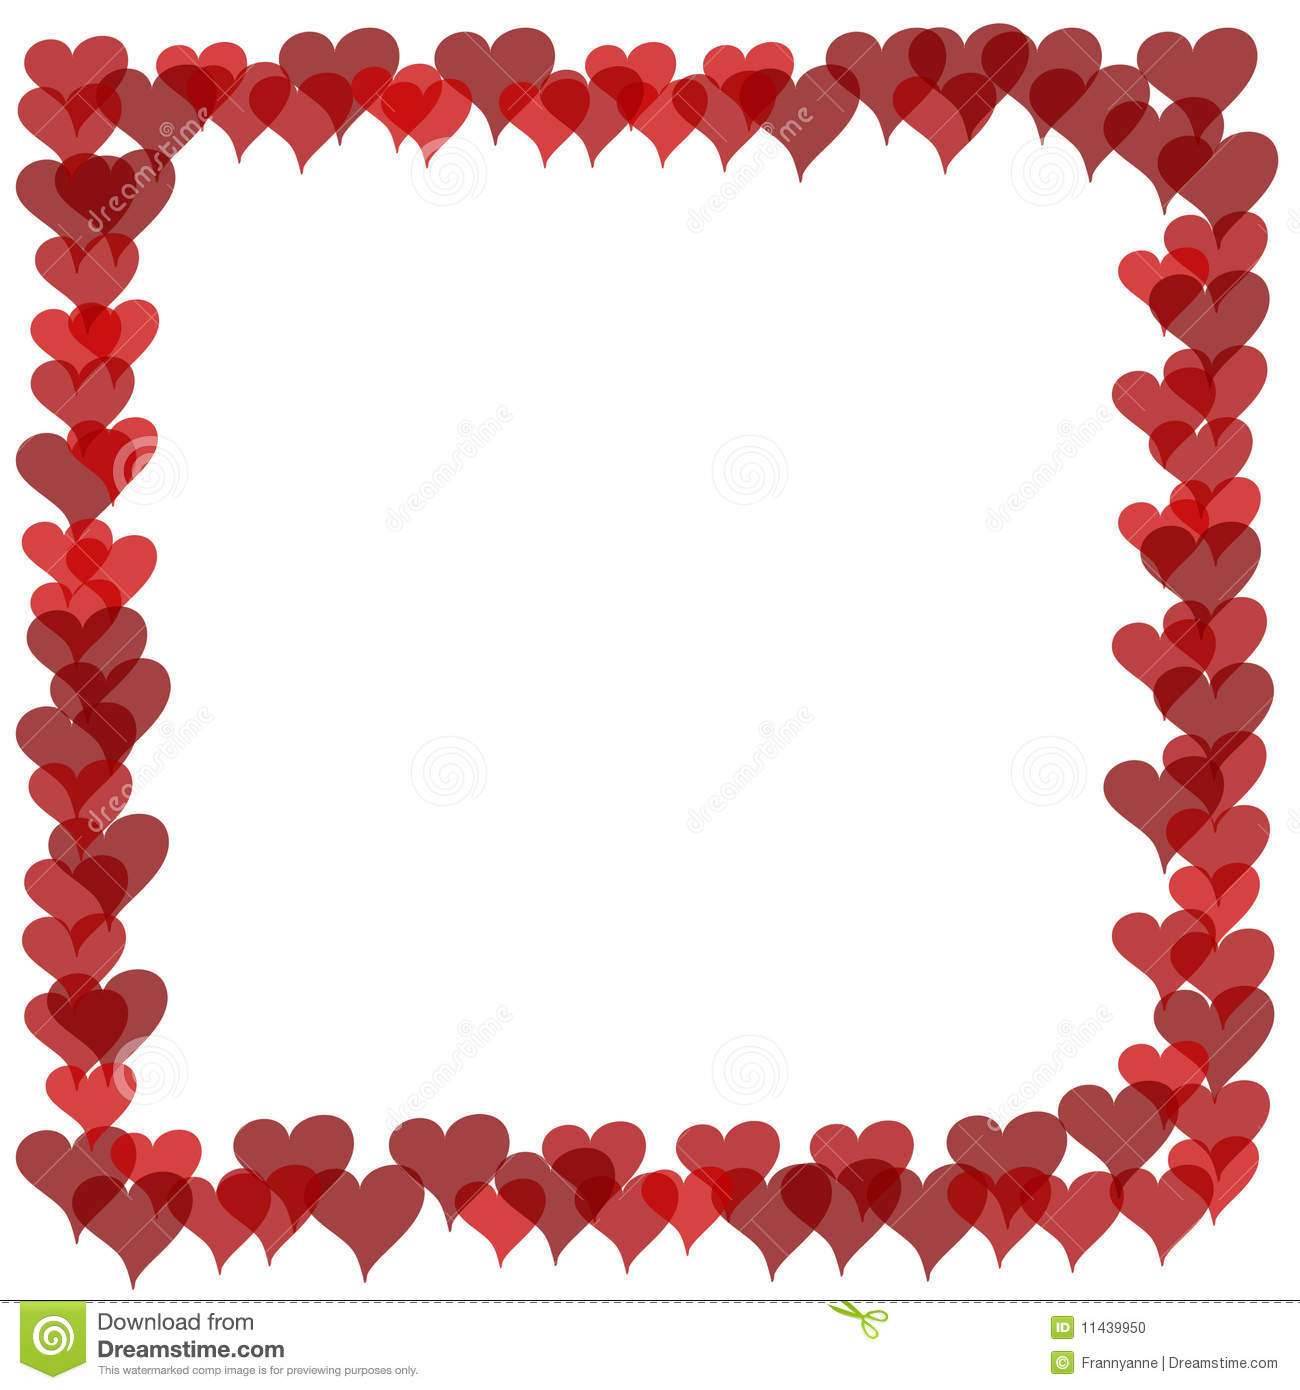 Valentines Border   Overlapping Hearts